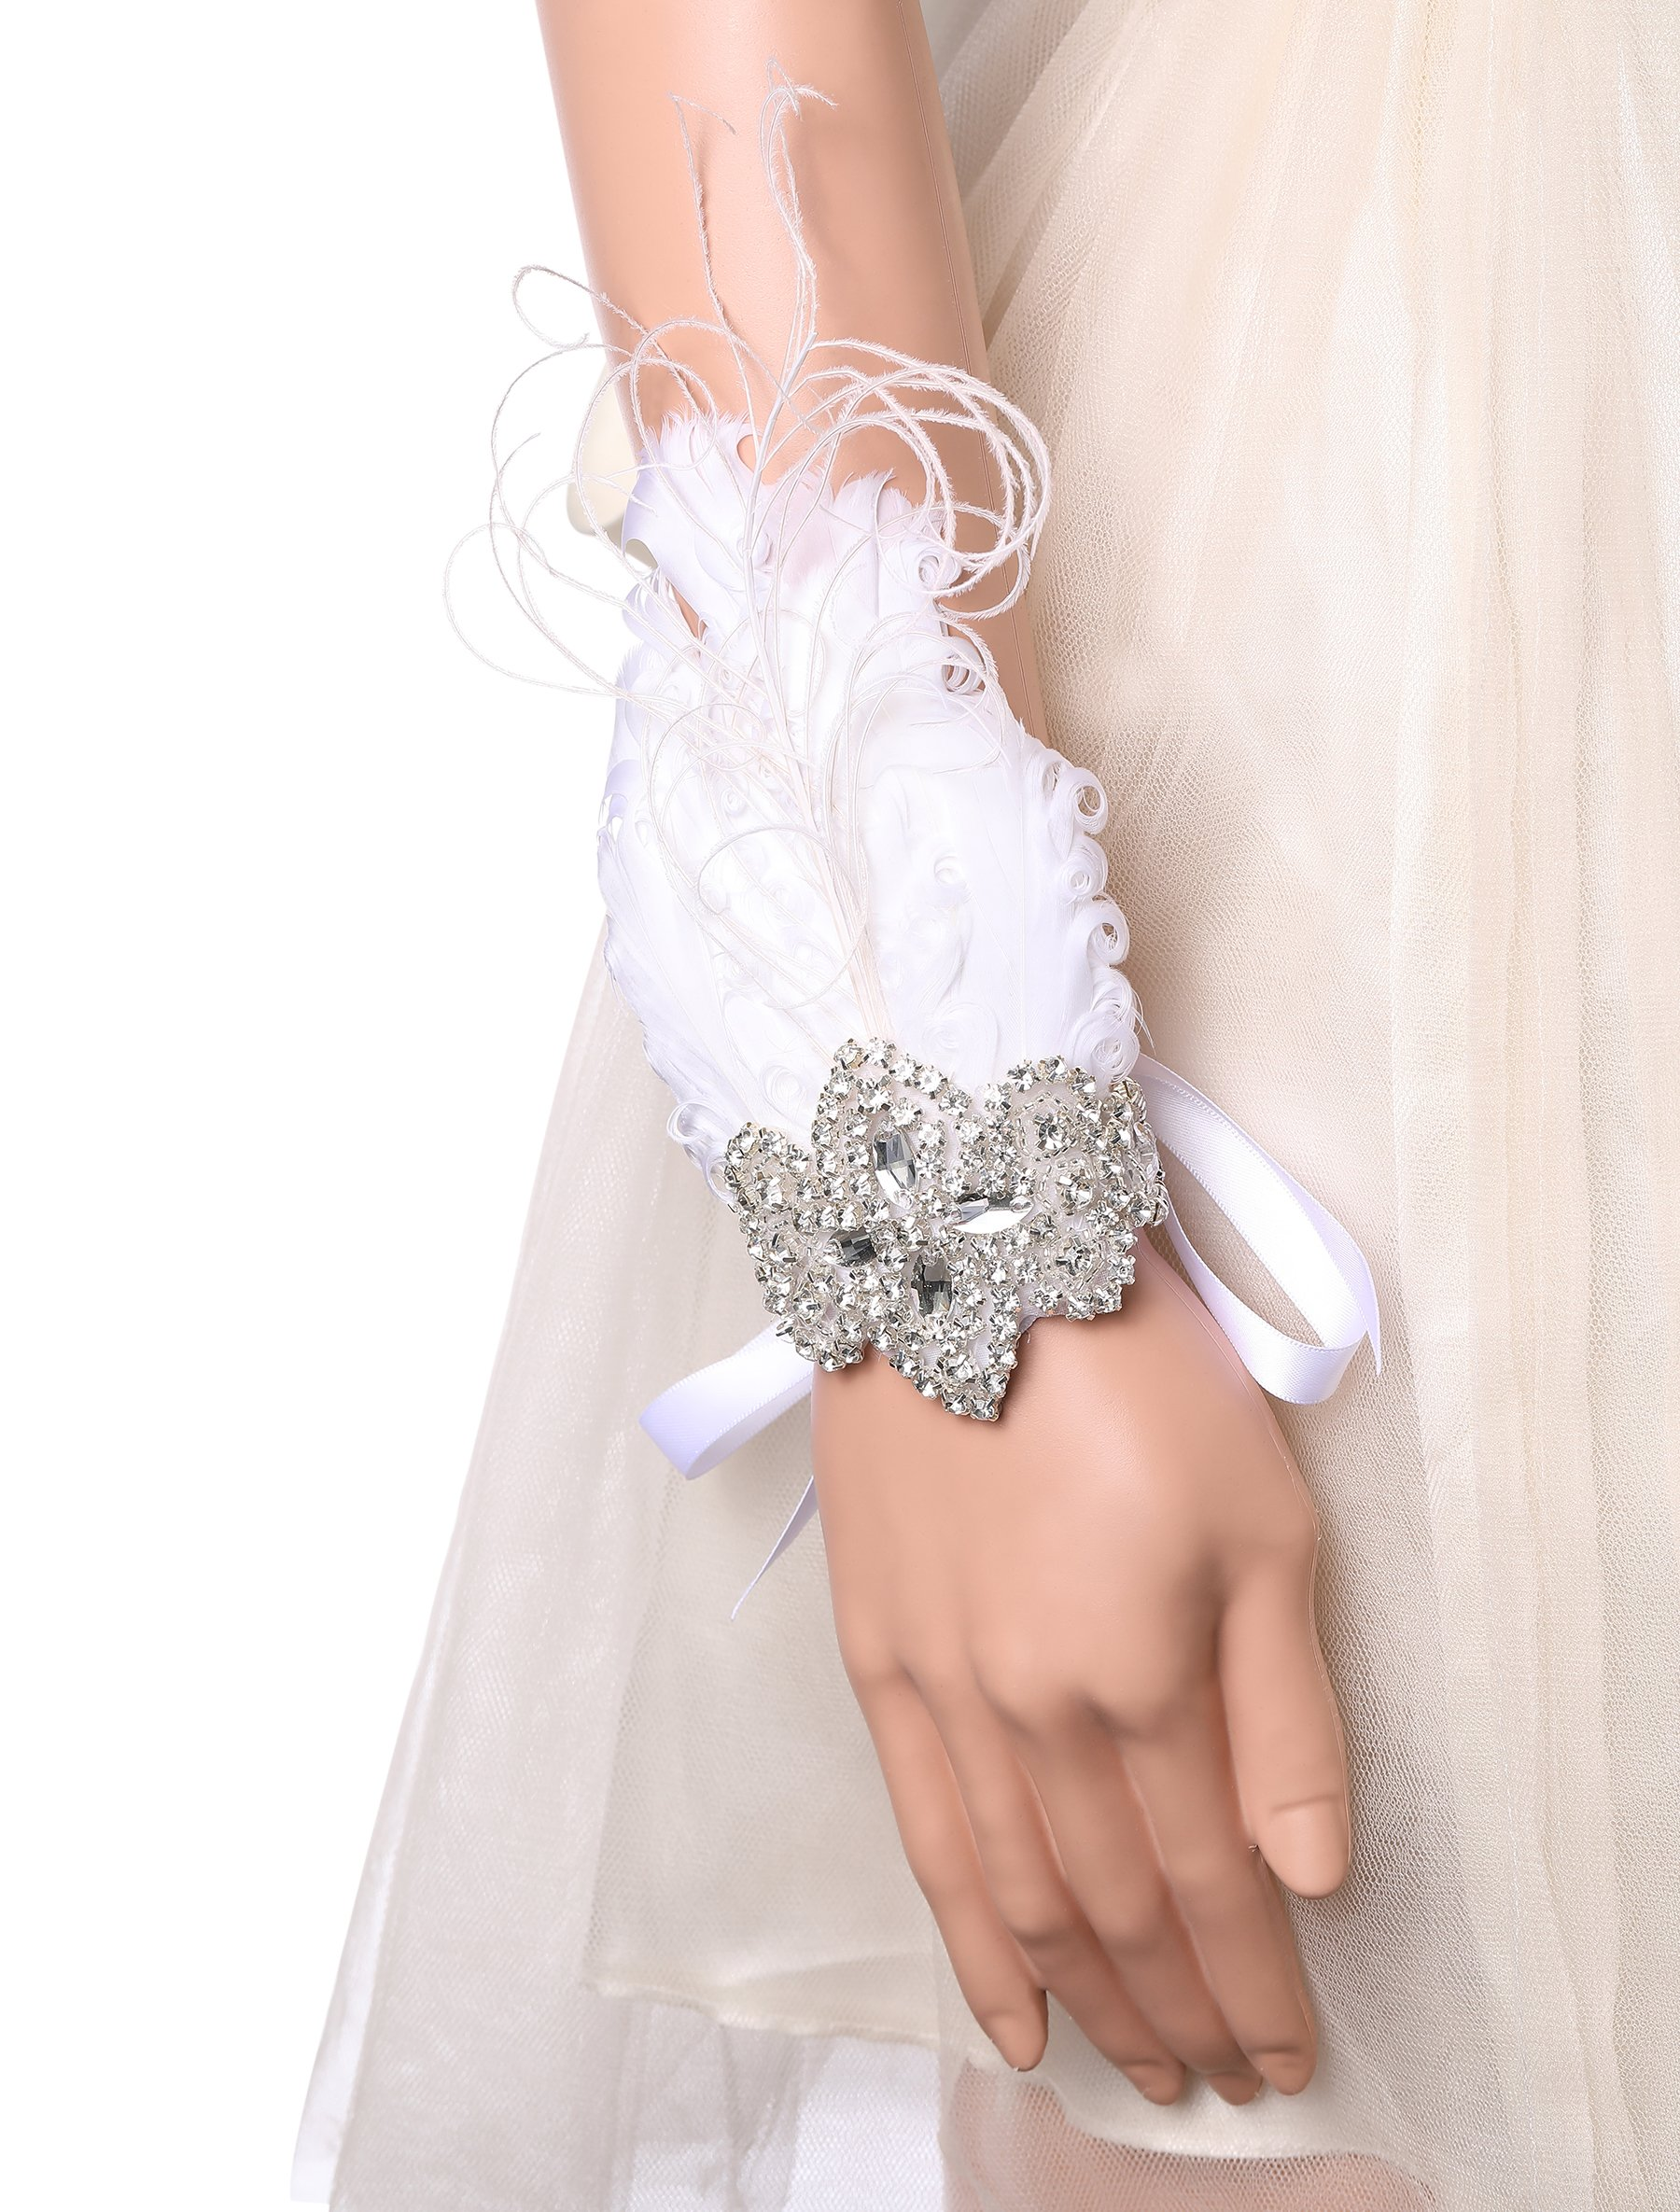 BABEYOND 1920s Wedding Wrist Corsage Gatsby Peacock Feather Bridal Wristband Corsage Roaring 20s Flapper Wedding Costume Accessories (White by BABEYOND (Image #6)